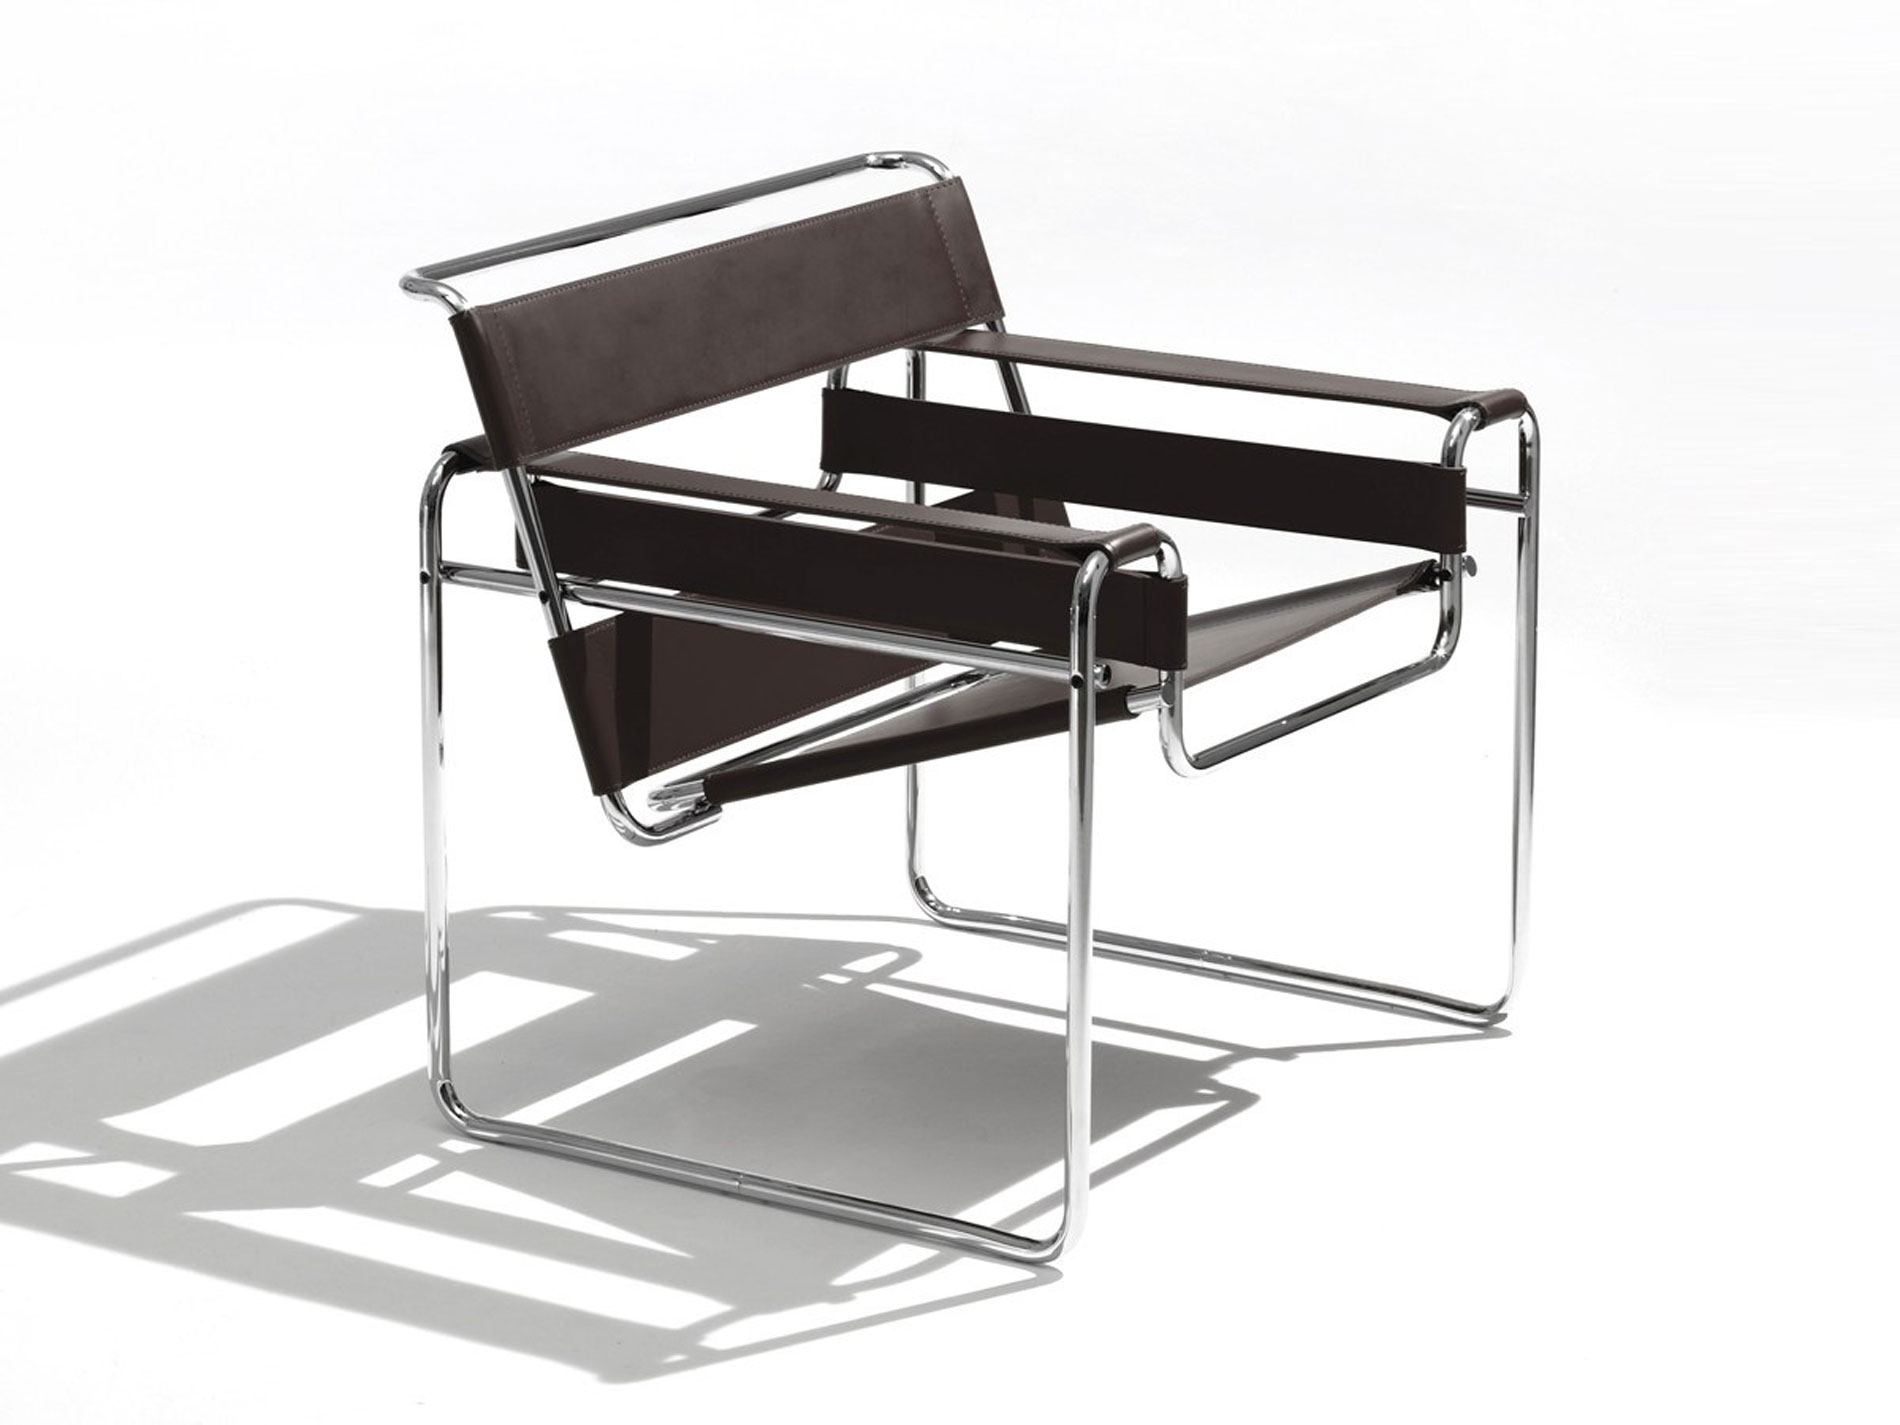 design icon Marcel breuer Wassily chair